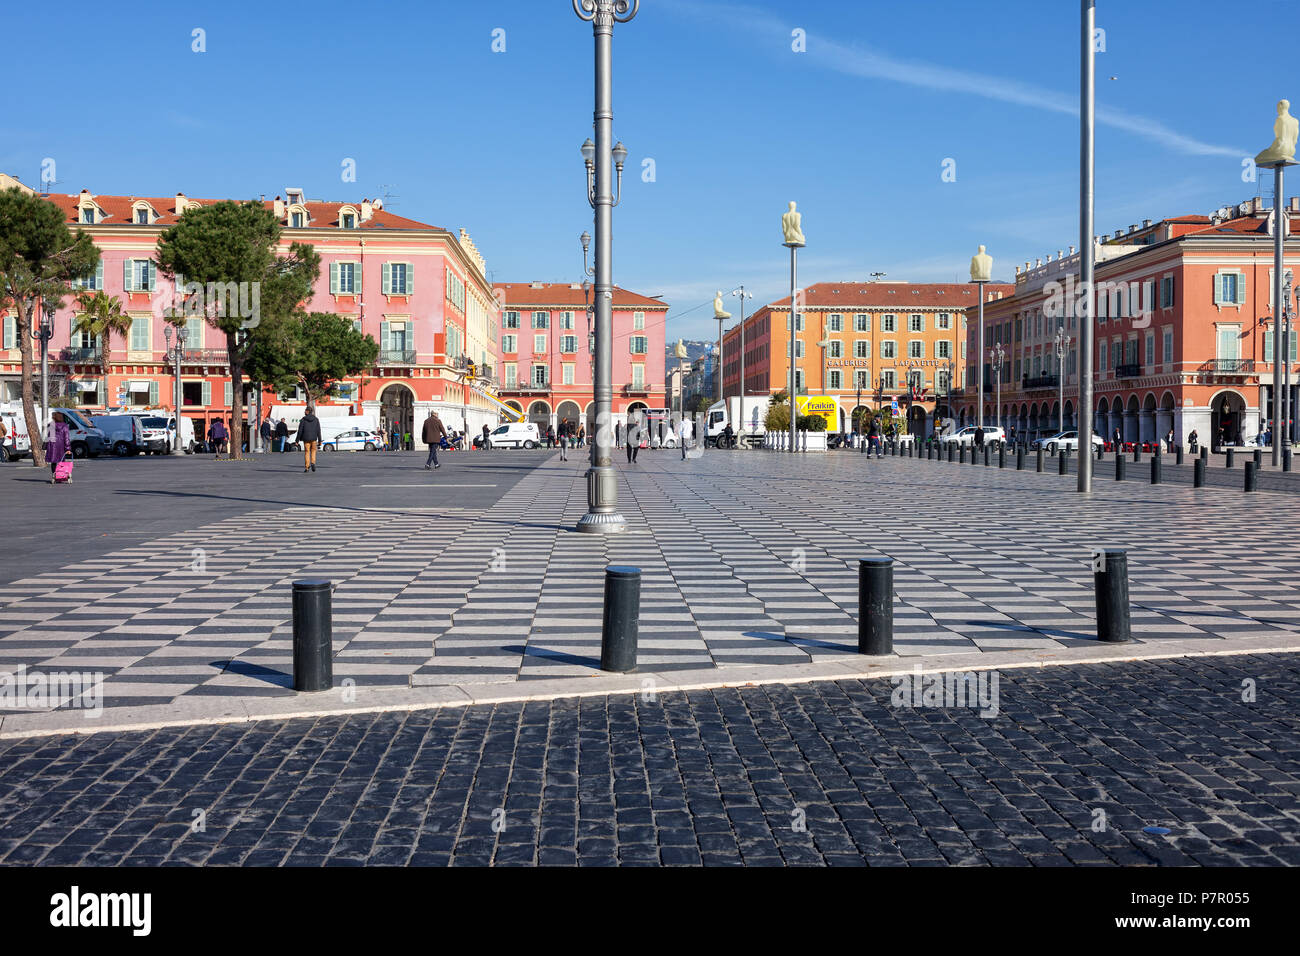 France, Nice, Place Massena, main square in the city center Stock Photo